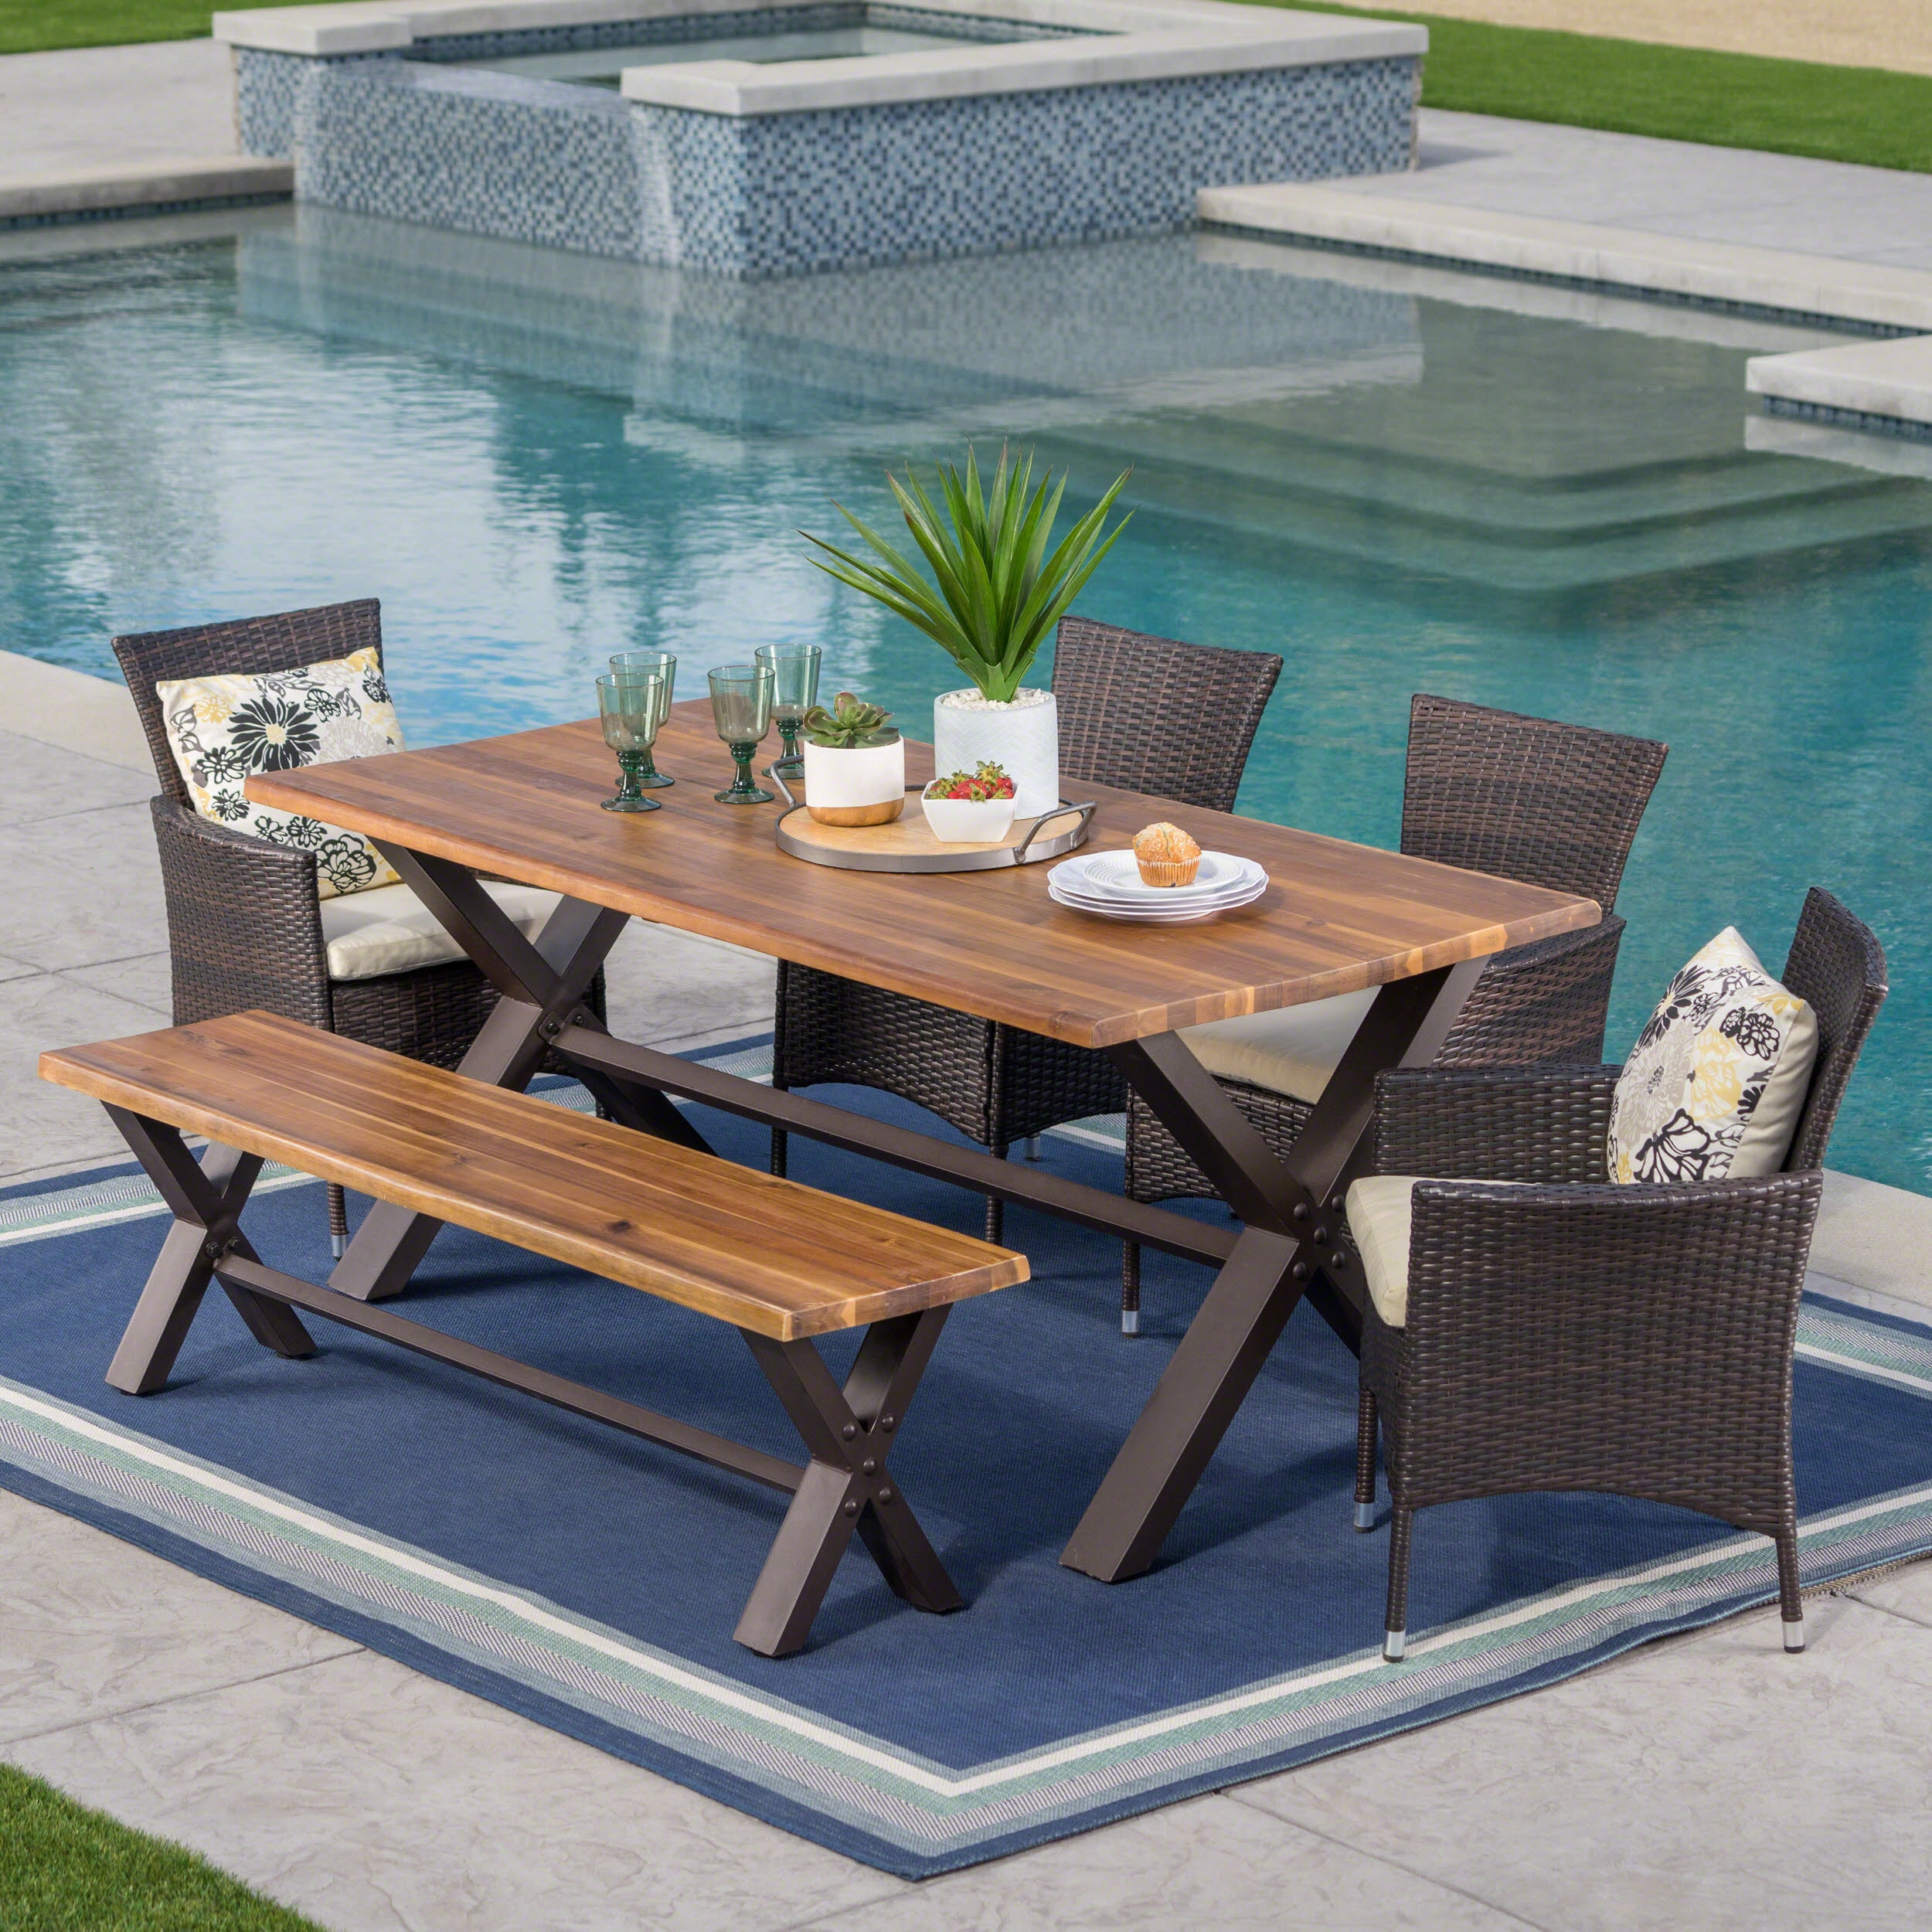 Ozark Outdoor 6 Piece Rectangle Wicker Wood Dining Set With Cushions By Christopher Knight Home